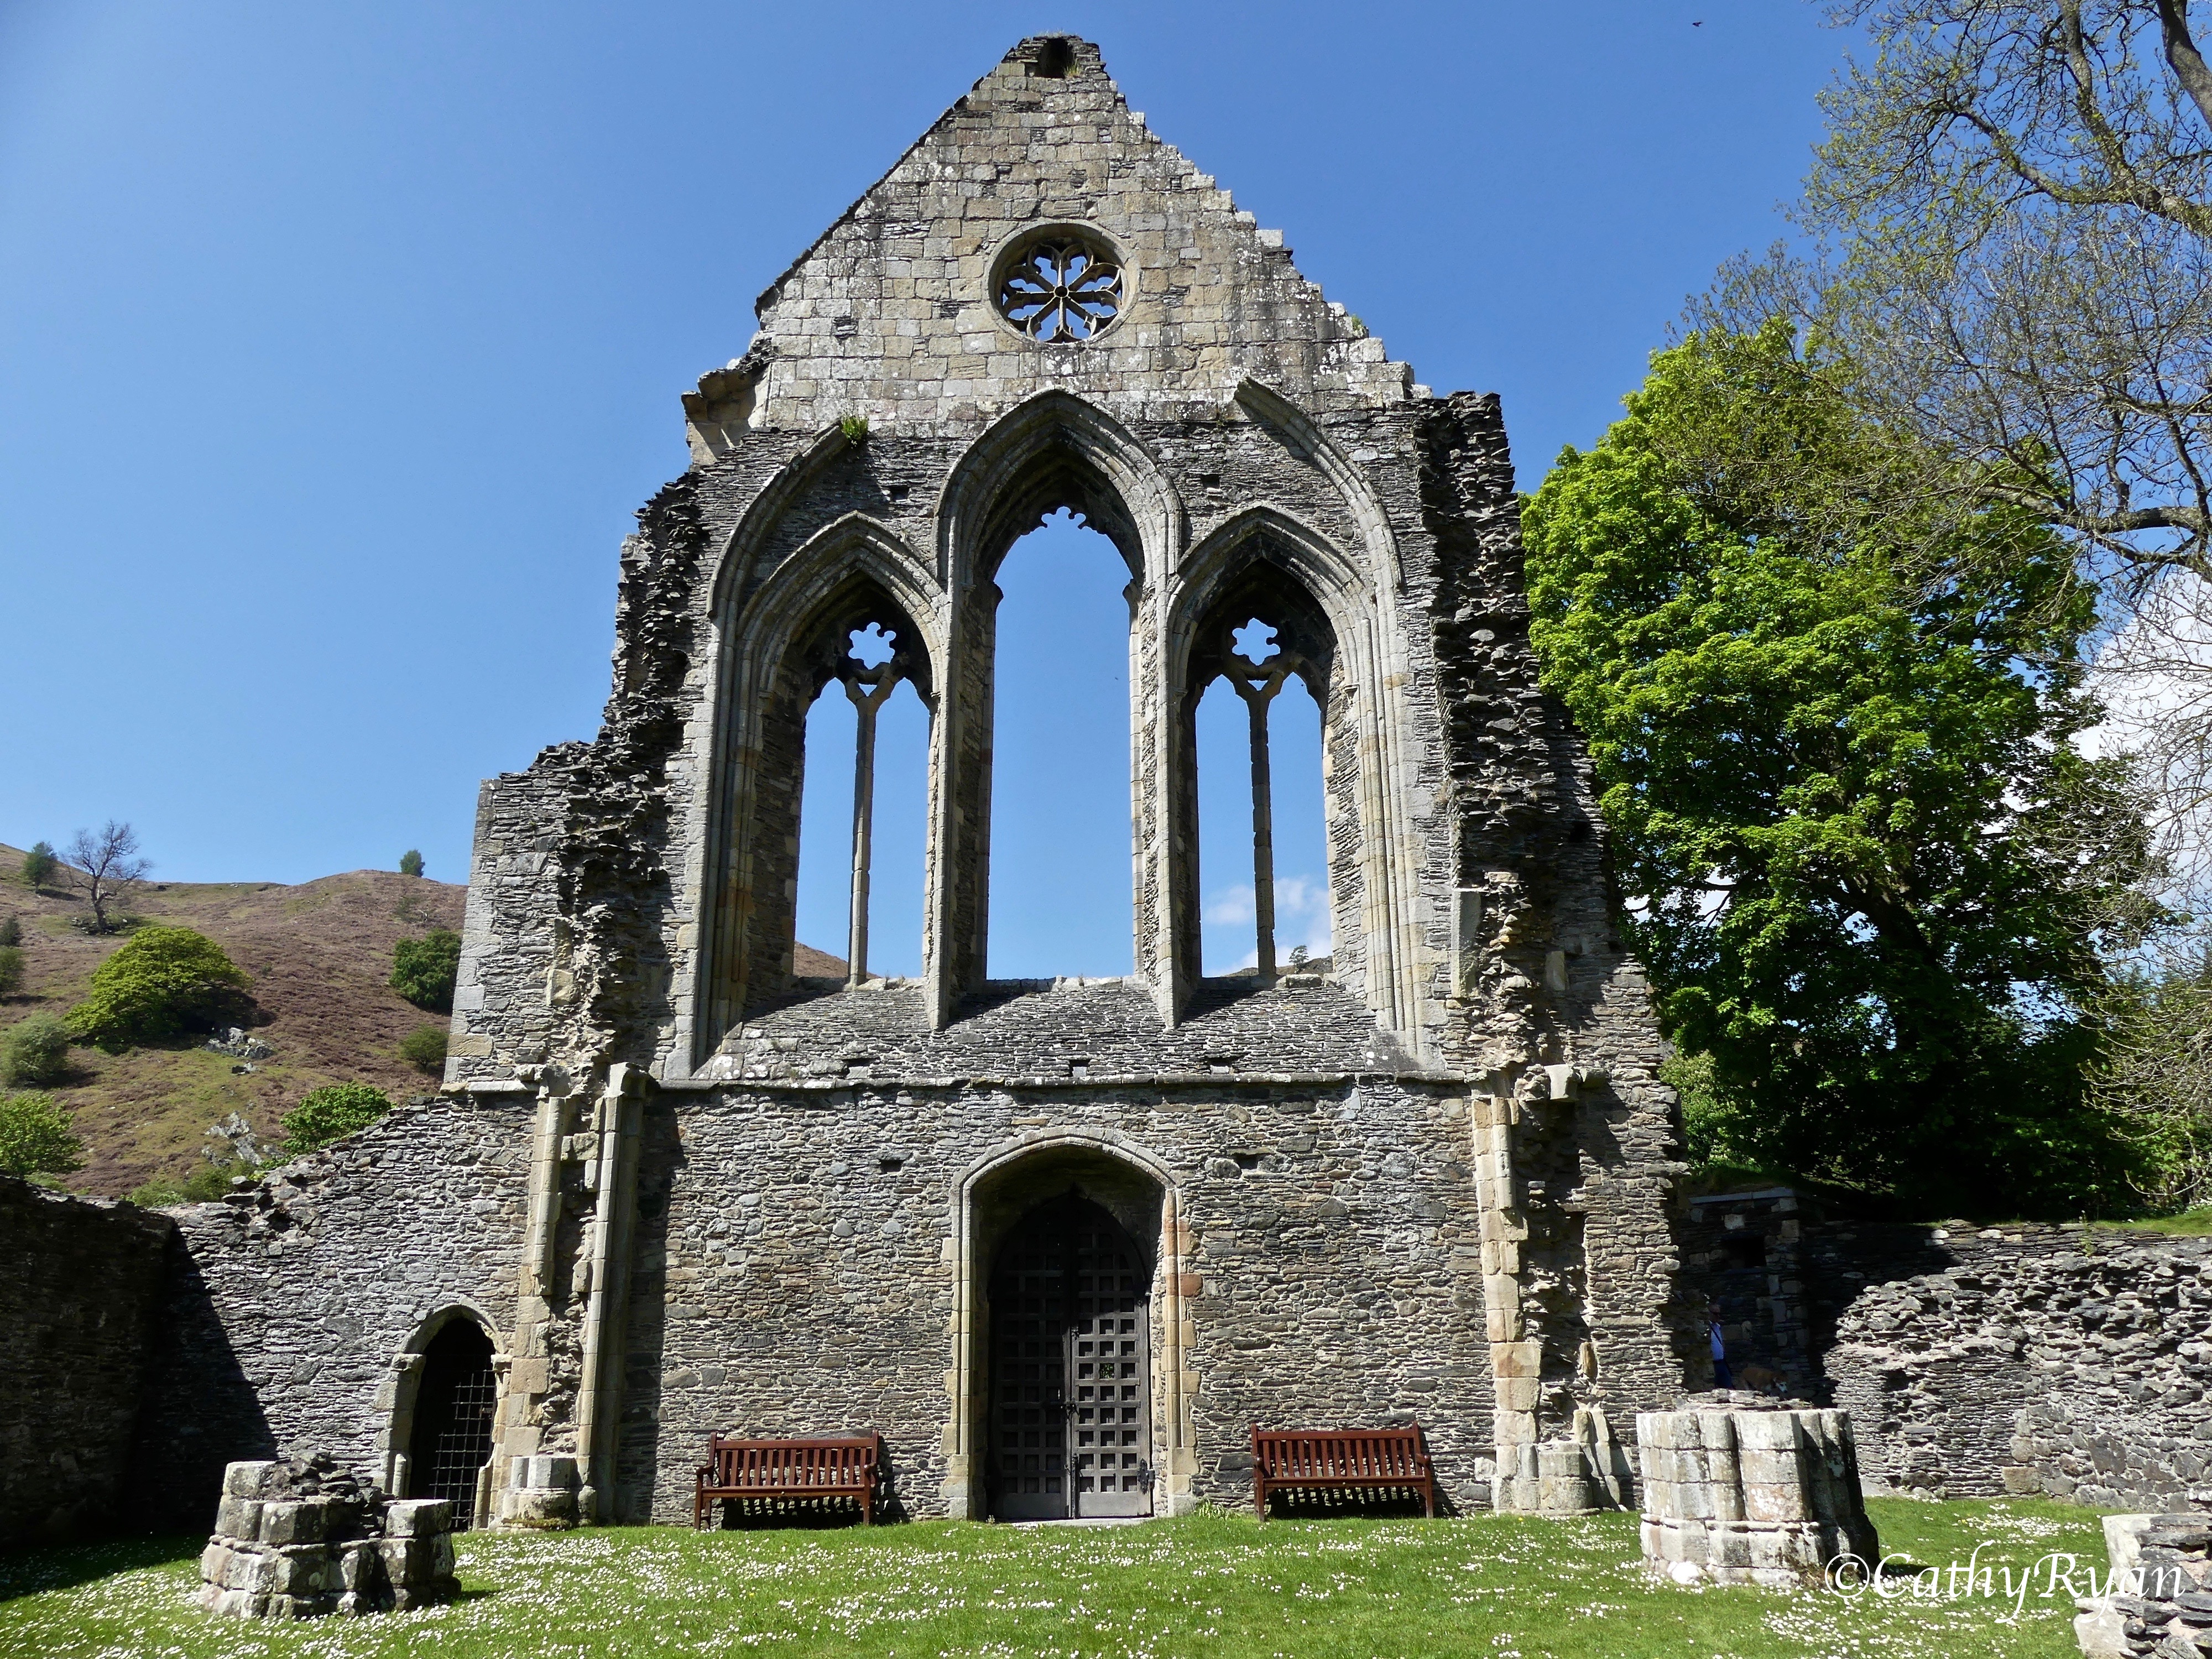 #WordlessWednesday ~ Valle Crucis ~ Another Abbey to fall foul of Henry VIII #Photography